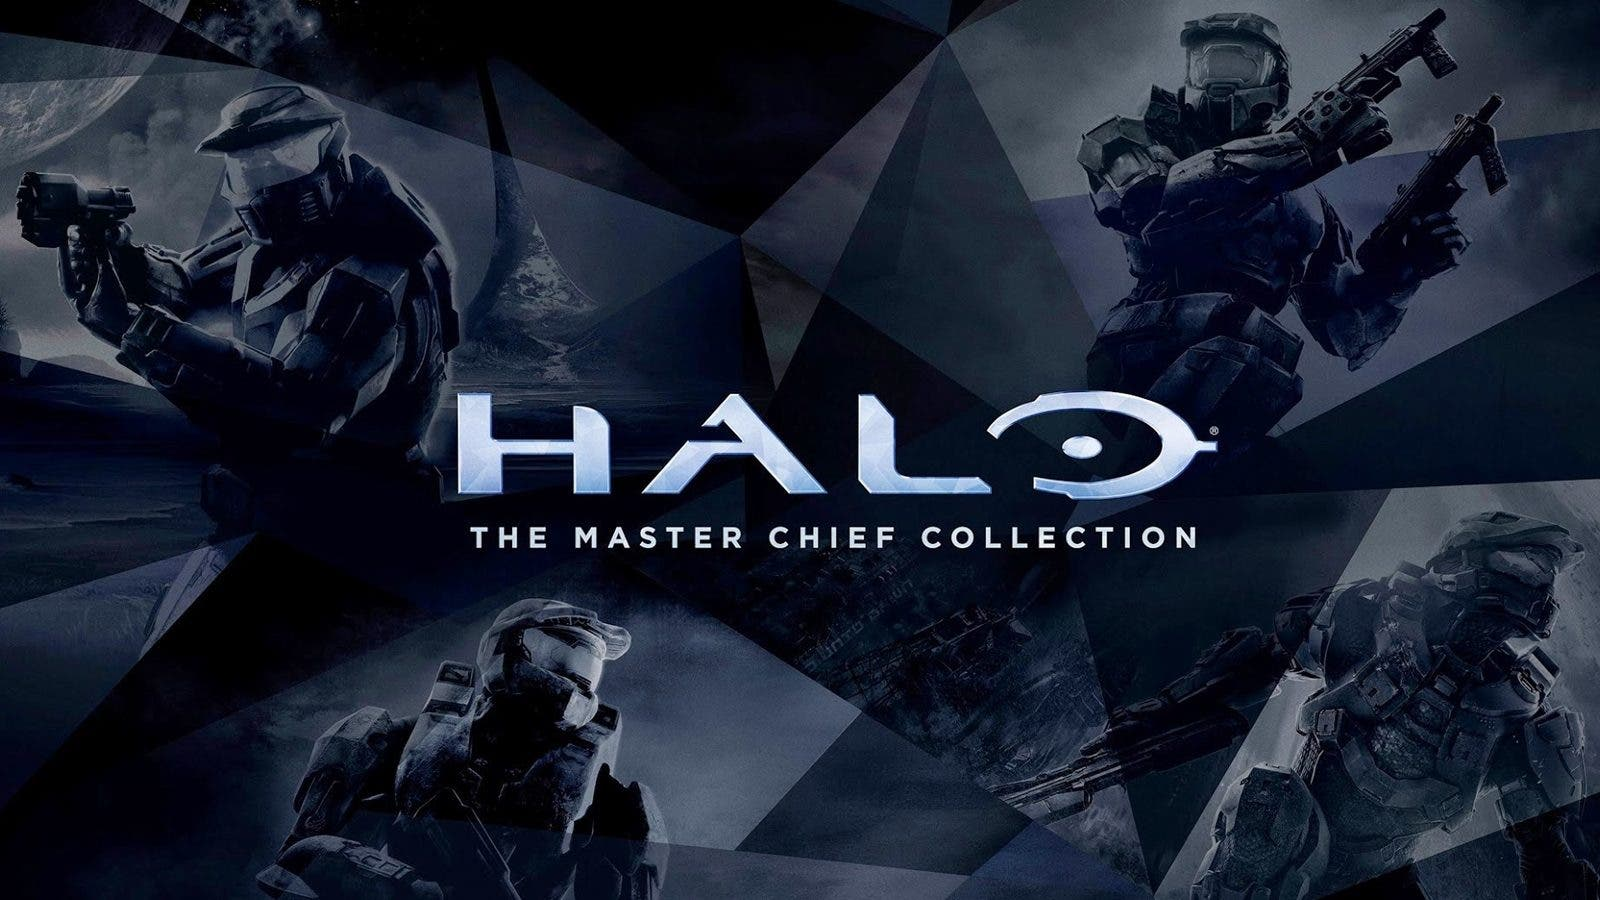 Halo: The Master Chief Collection descarta tajantemente las microtransacciones 7